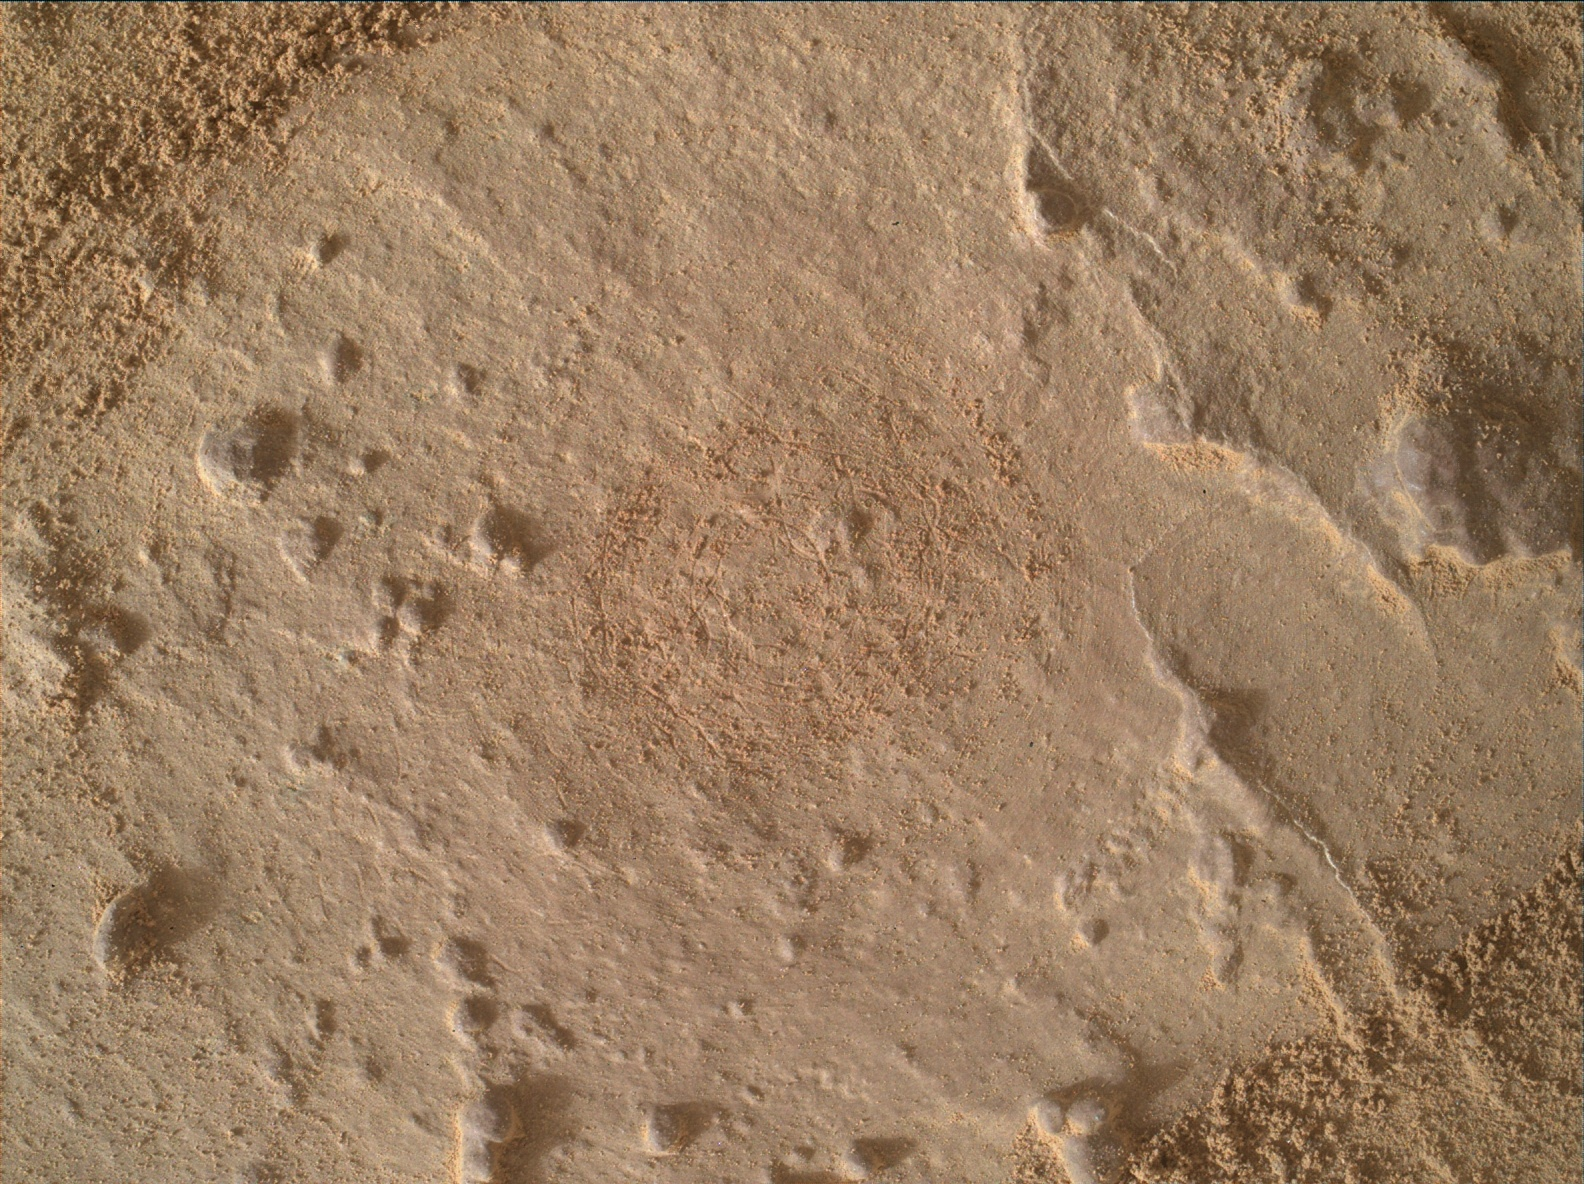 Nasa's Mars rover Curiosity acquired this image using its Mars Hand Lens Imager (MAHLI) on Sol 1445